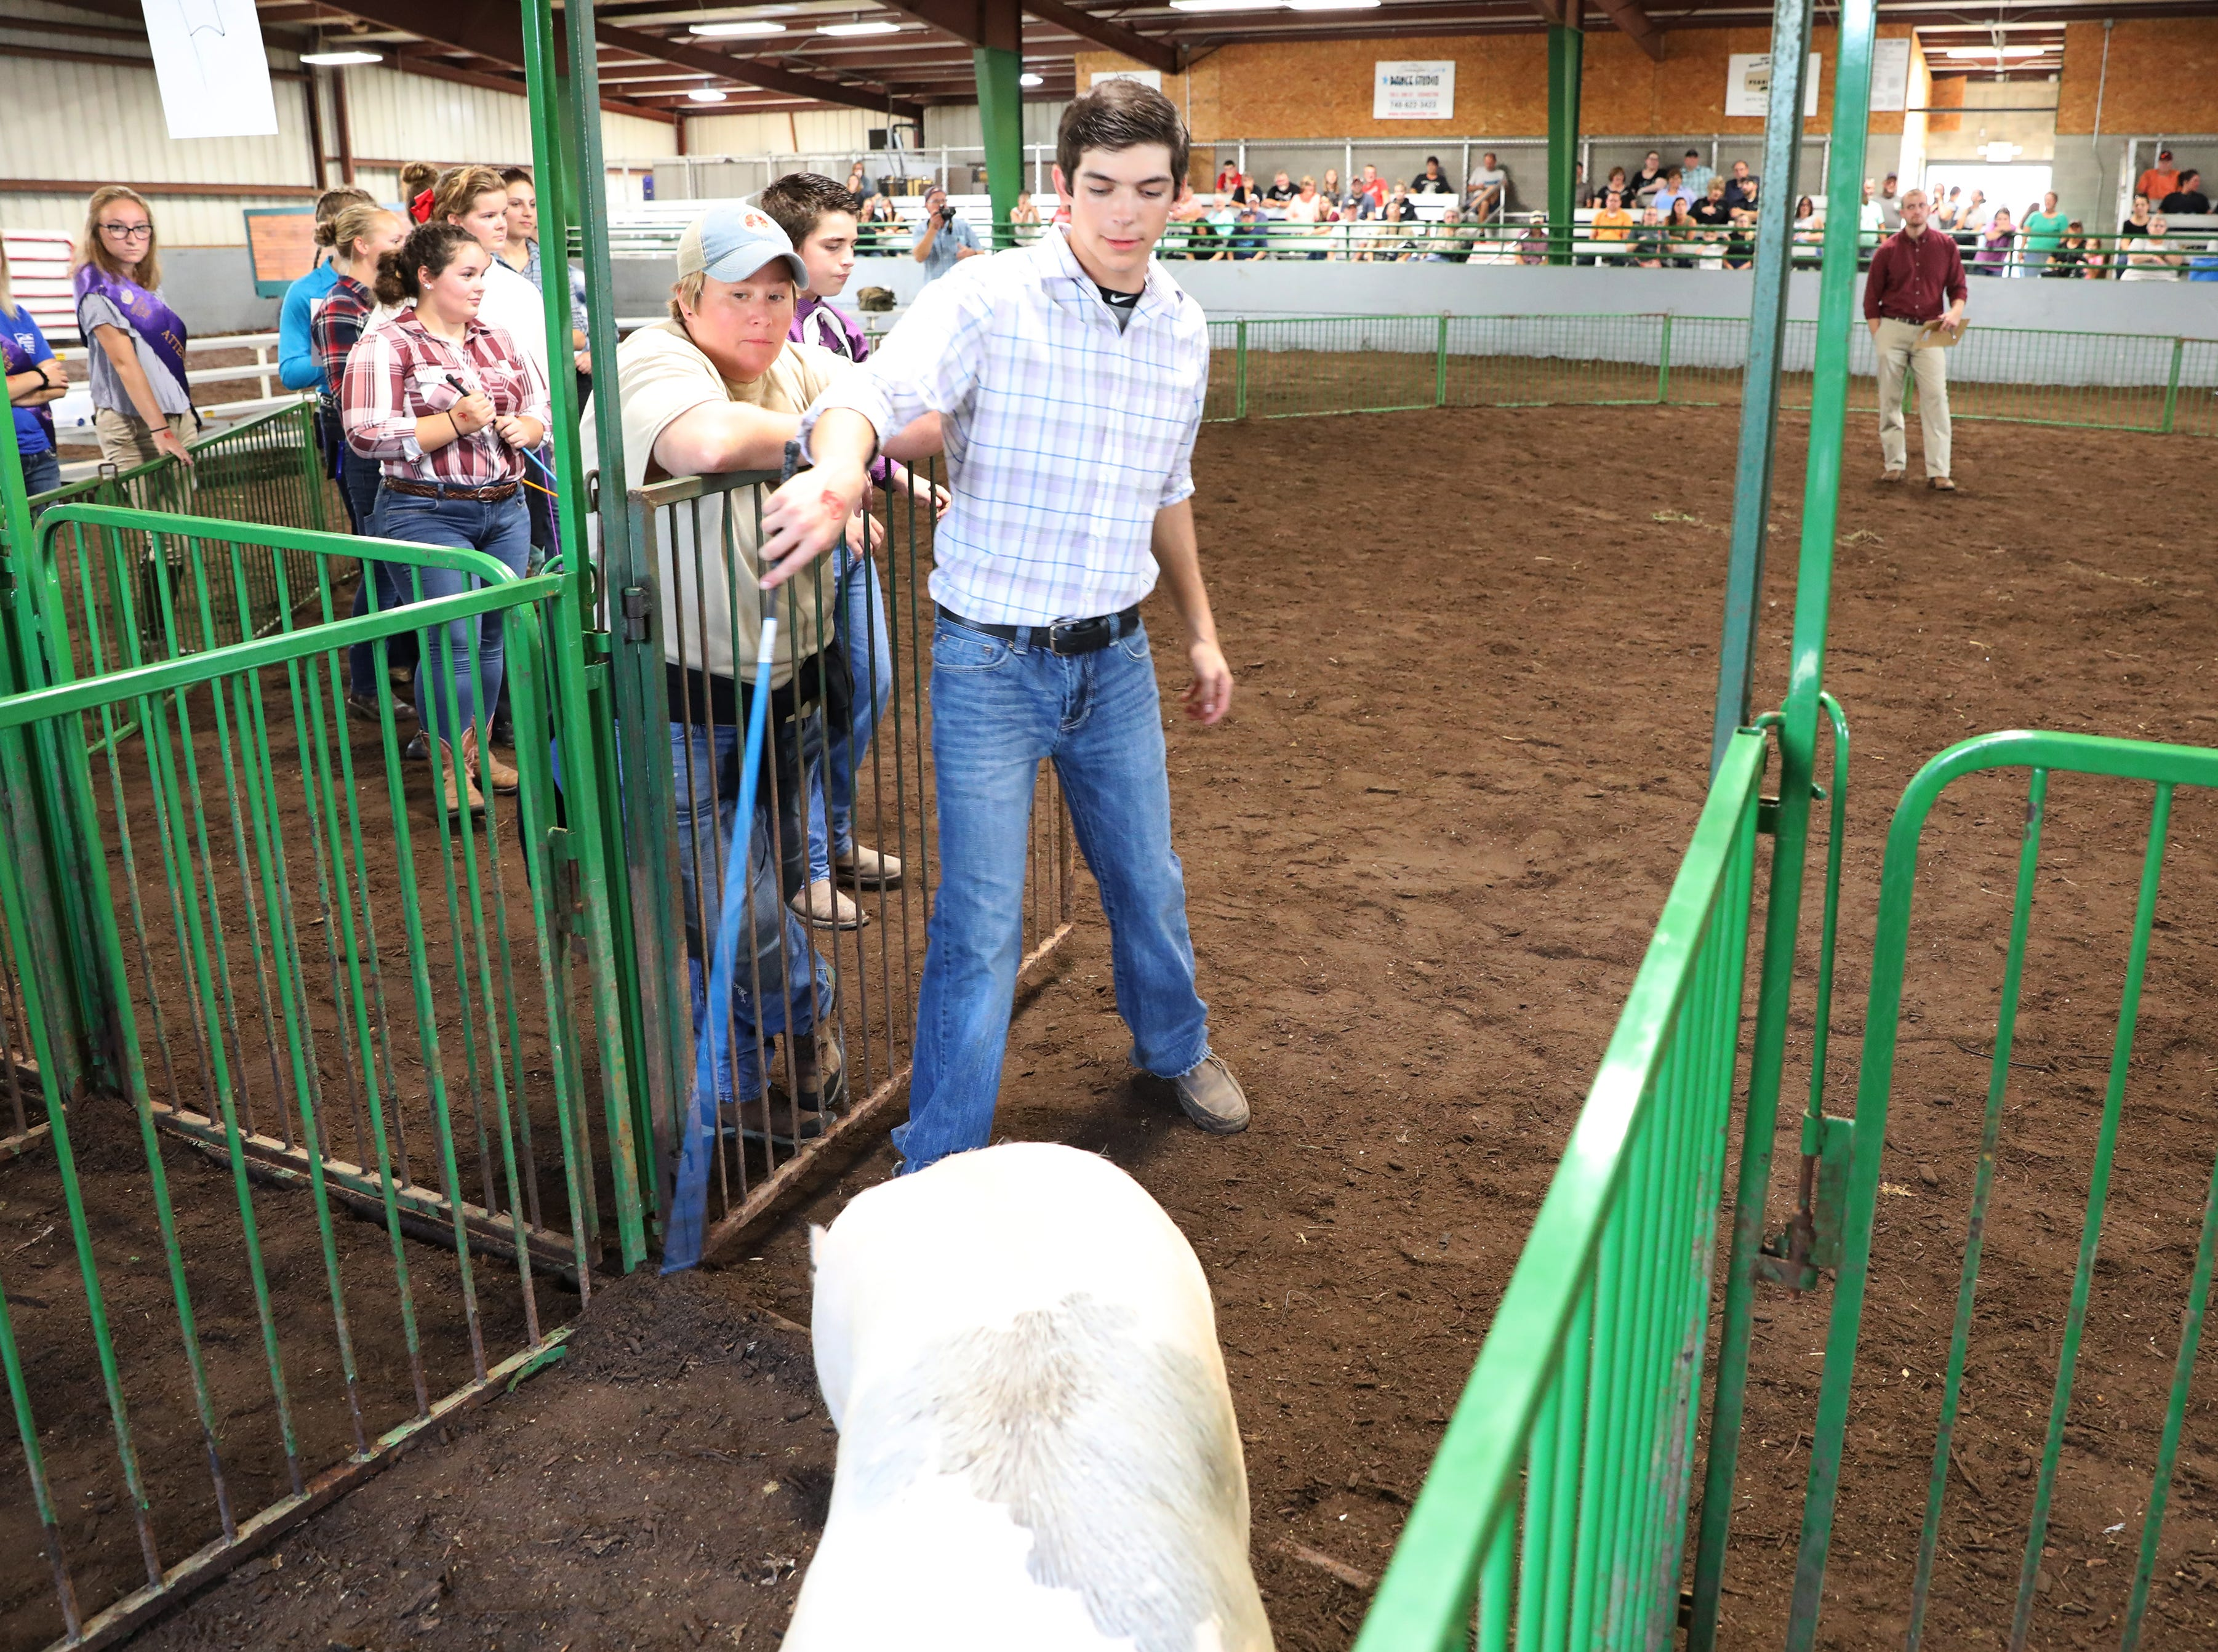 Justin Mason collects his hog to show during the Showman of Showmen at the Coshocton County Fair on Wednesday.